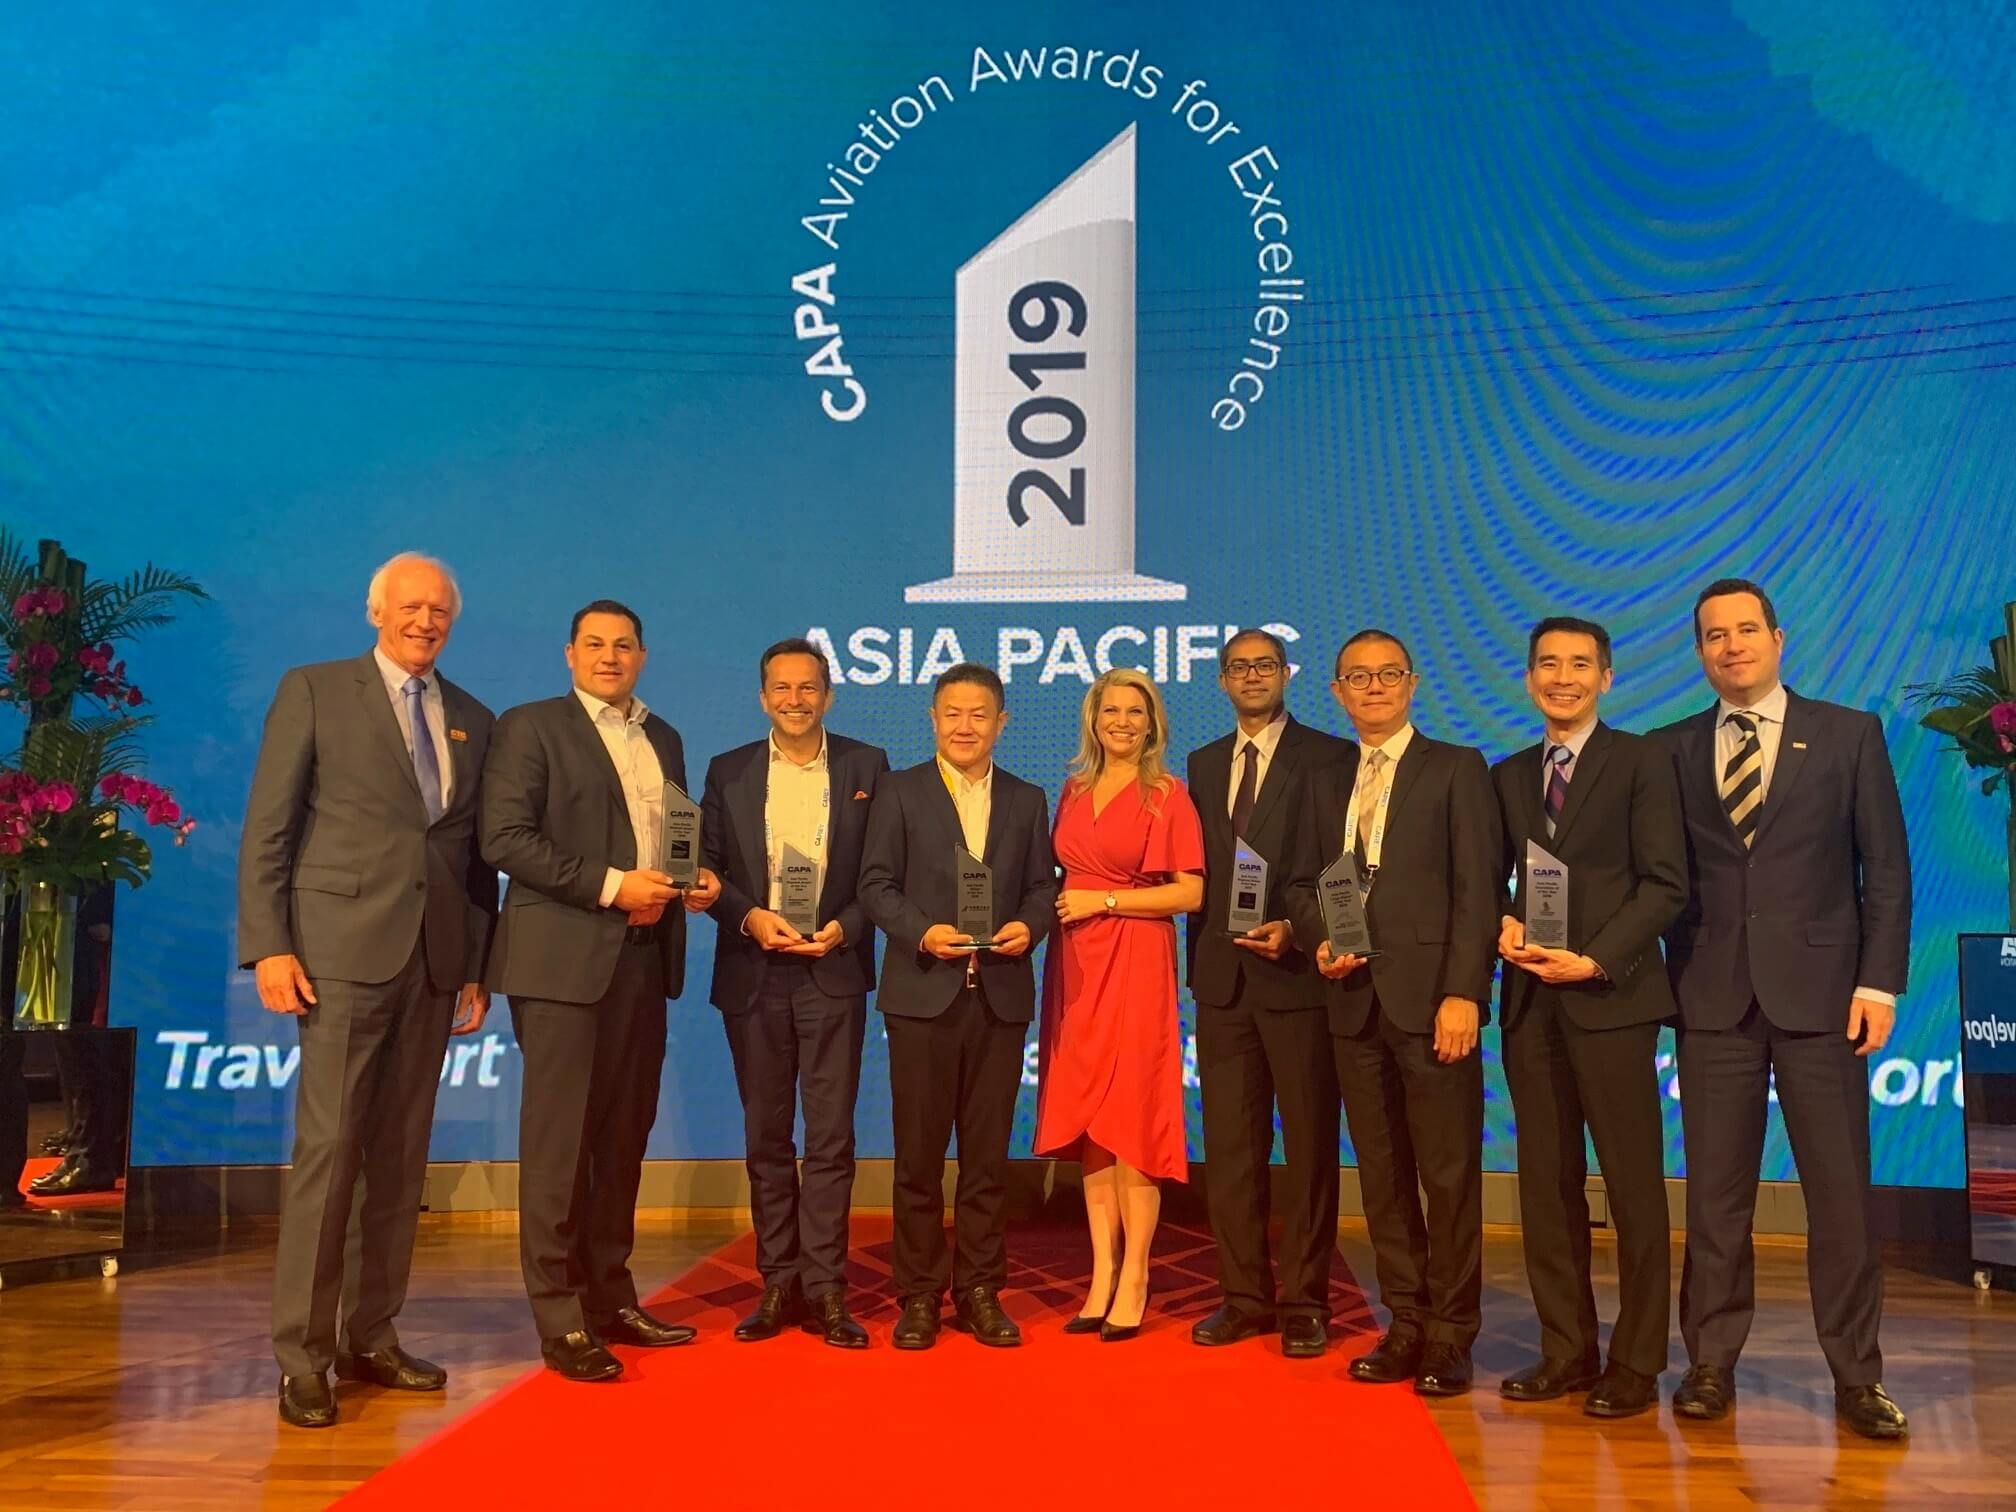 Asia Pacific aviation leaders recognized at CAPA event in Singapore